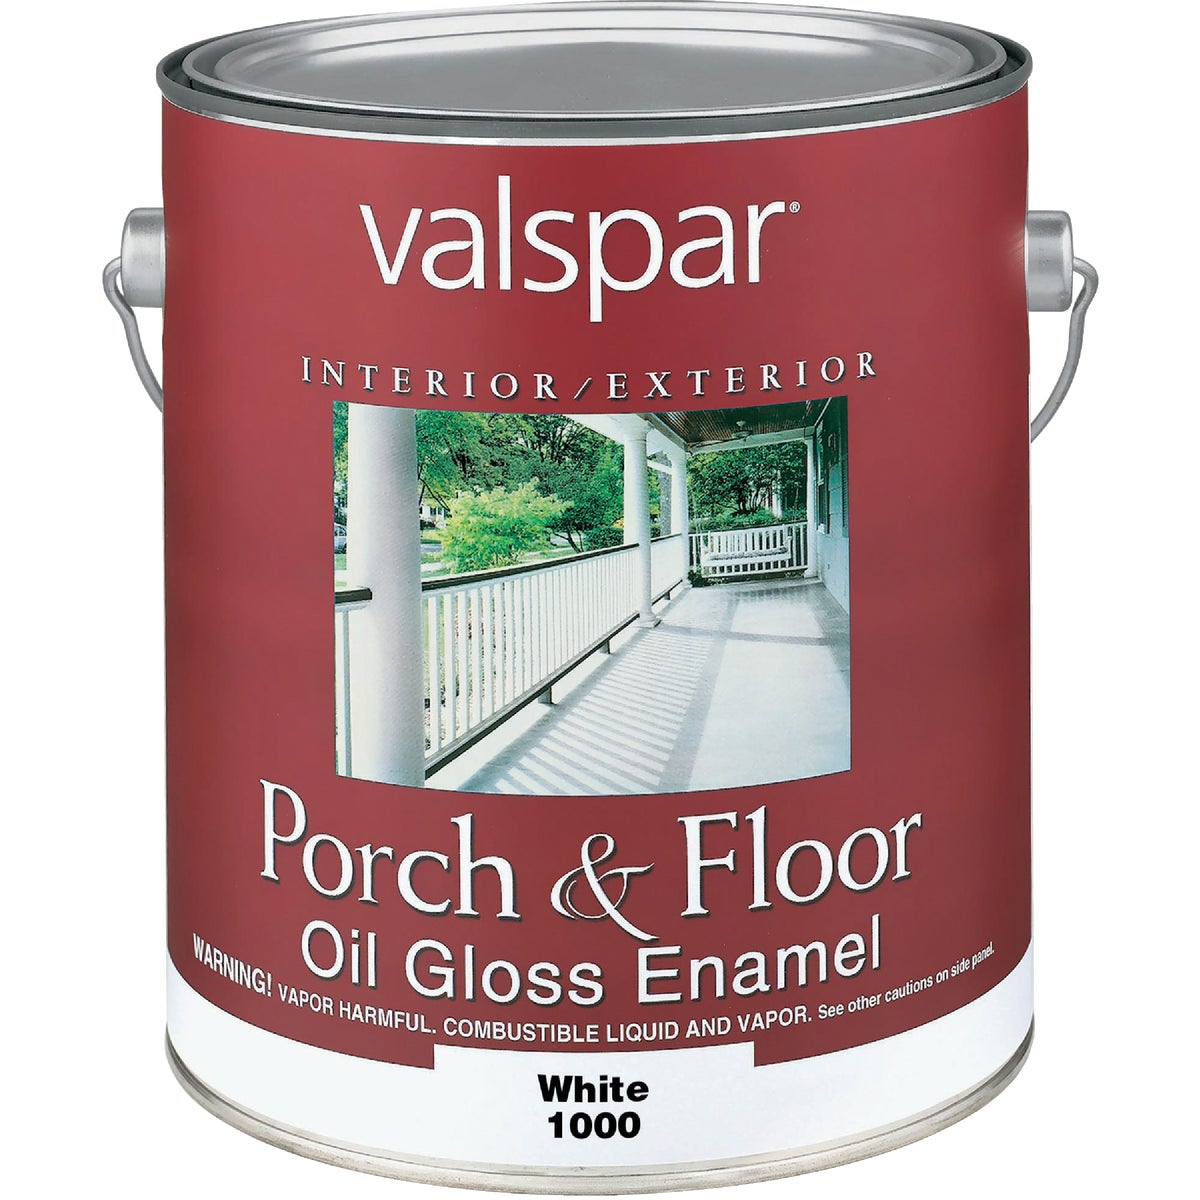 WHITE OIL FLOOR ENAMEL - 027.0001000.007 by Valspar Corp